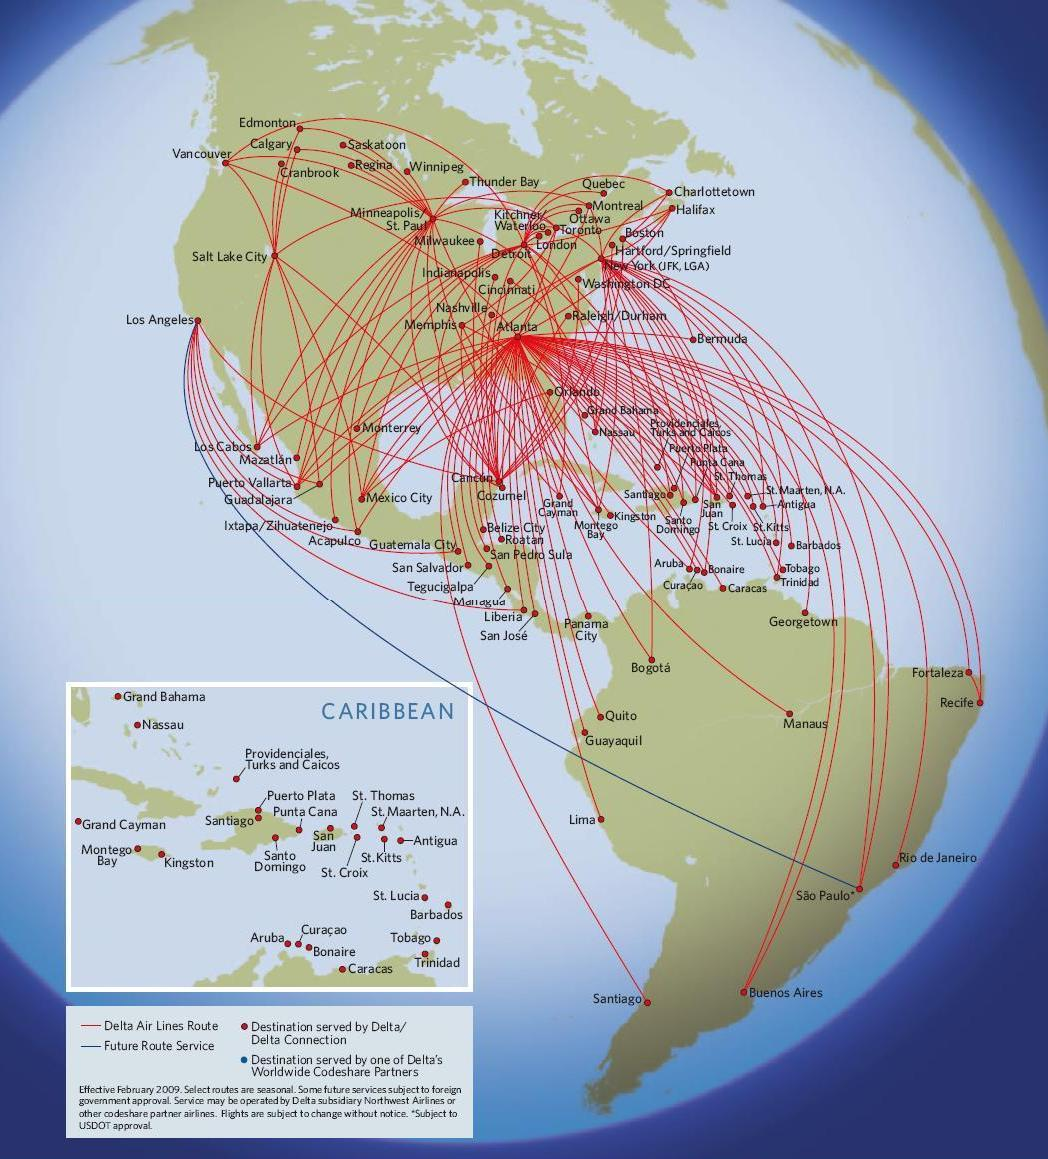 After Looking At The Maps It S Incredible How Extensive Their Worldwide Network Really Is In The U S I Wonder How Long Cvg Or Mem Will Survive As Hubs